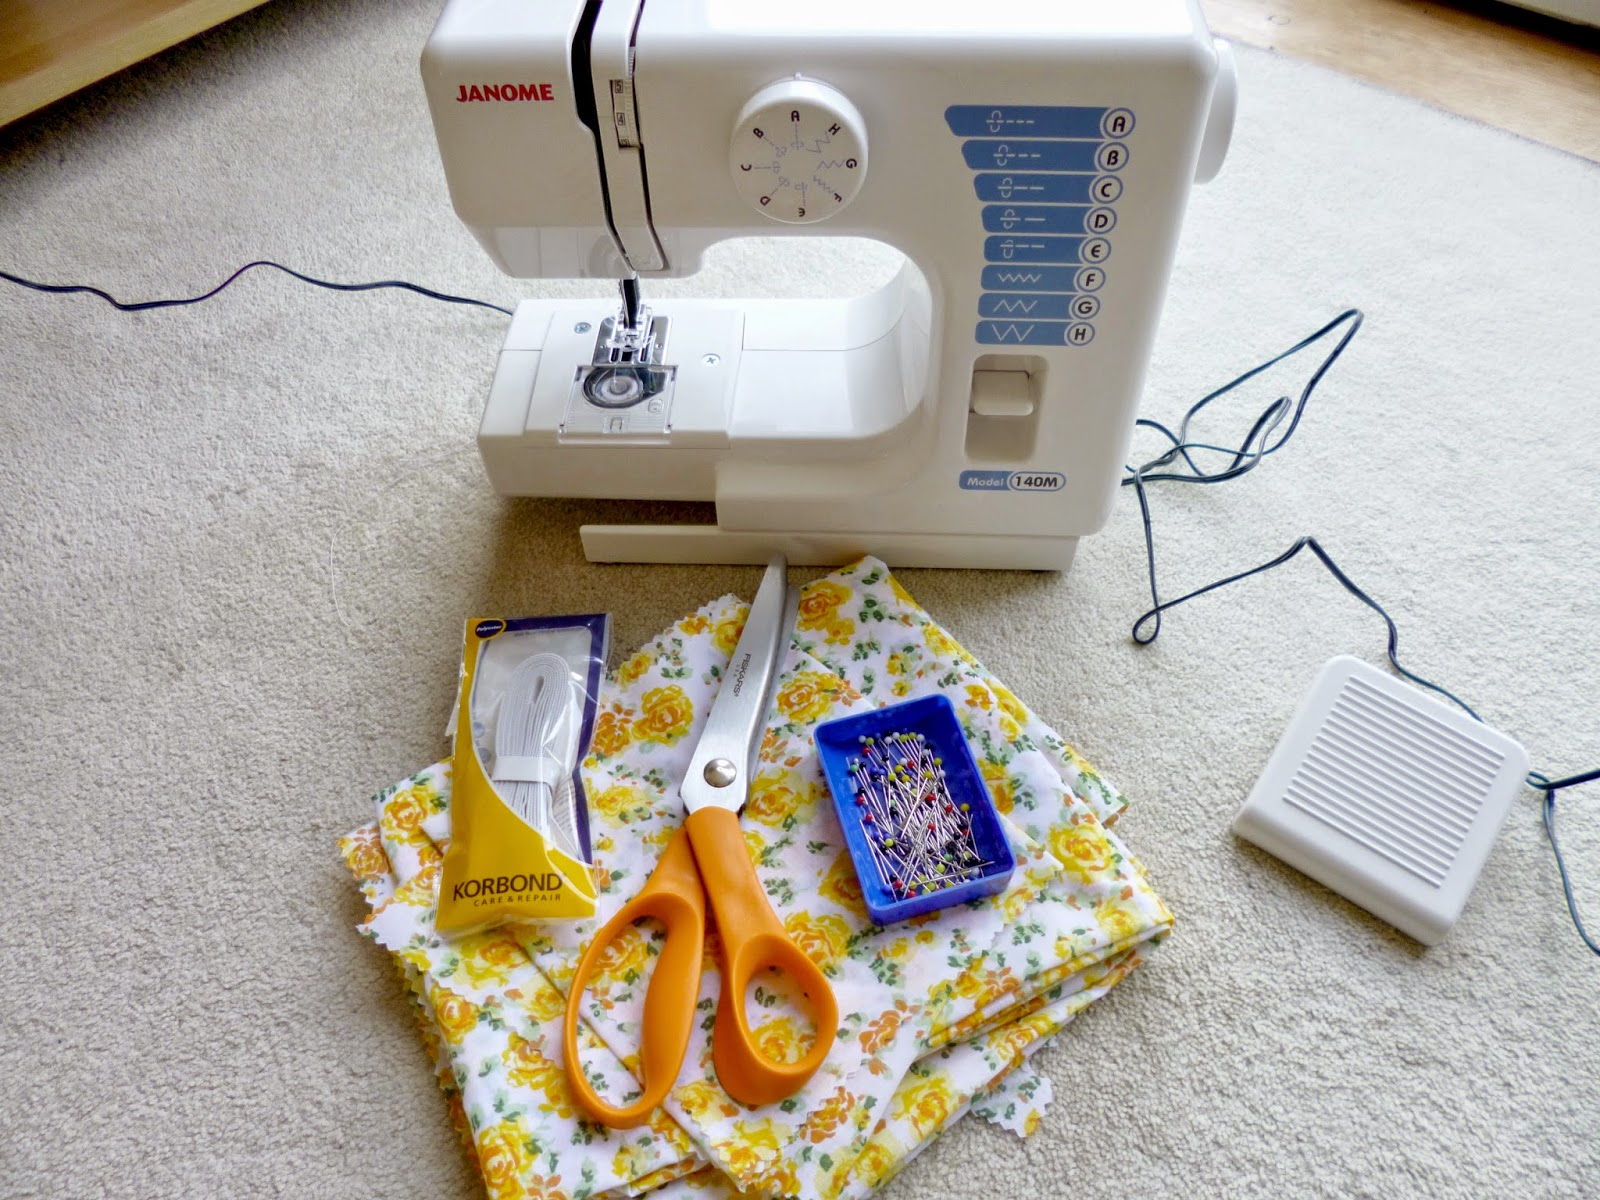 janome-sewing-machine-hobbycraft